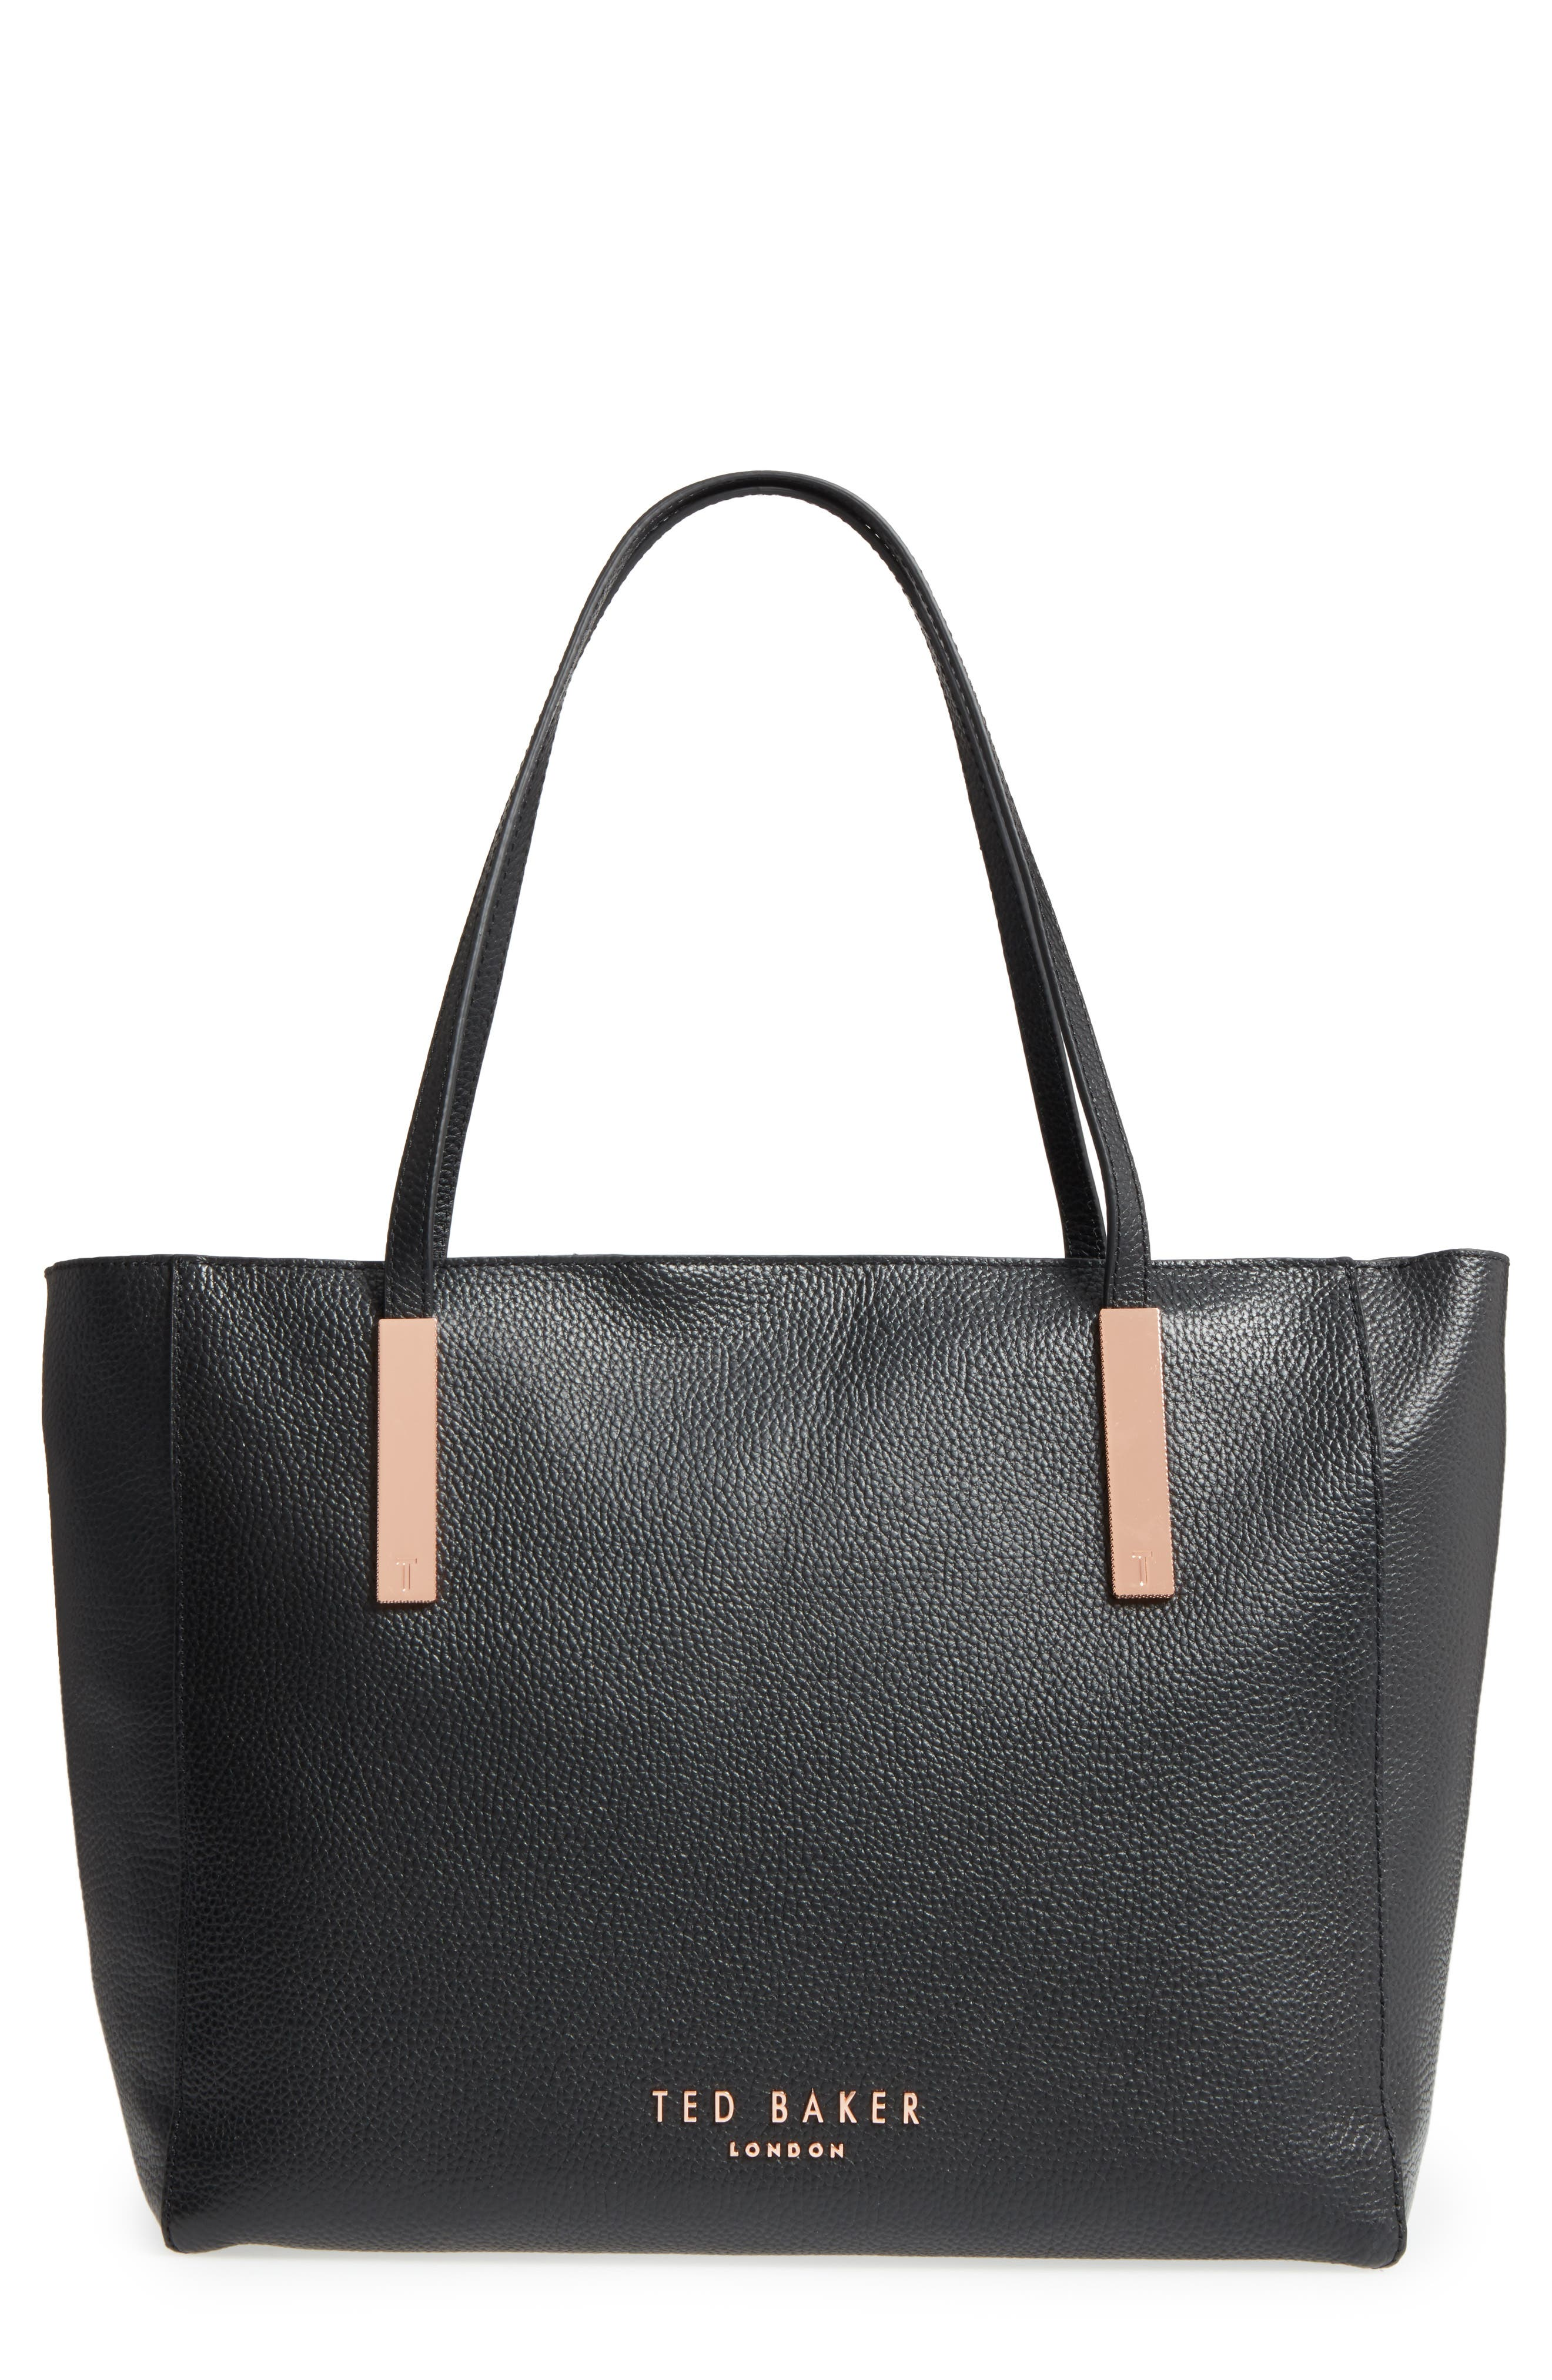 Main Image - Ted Baker London Sarahh Leather Shopper